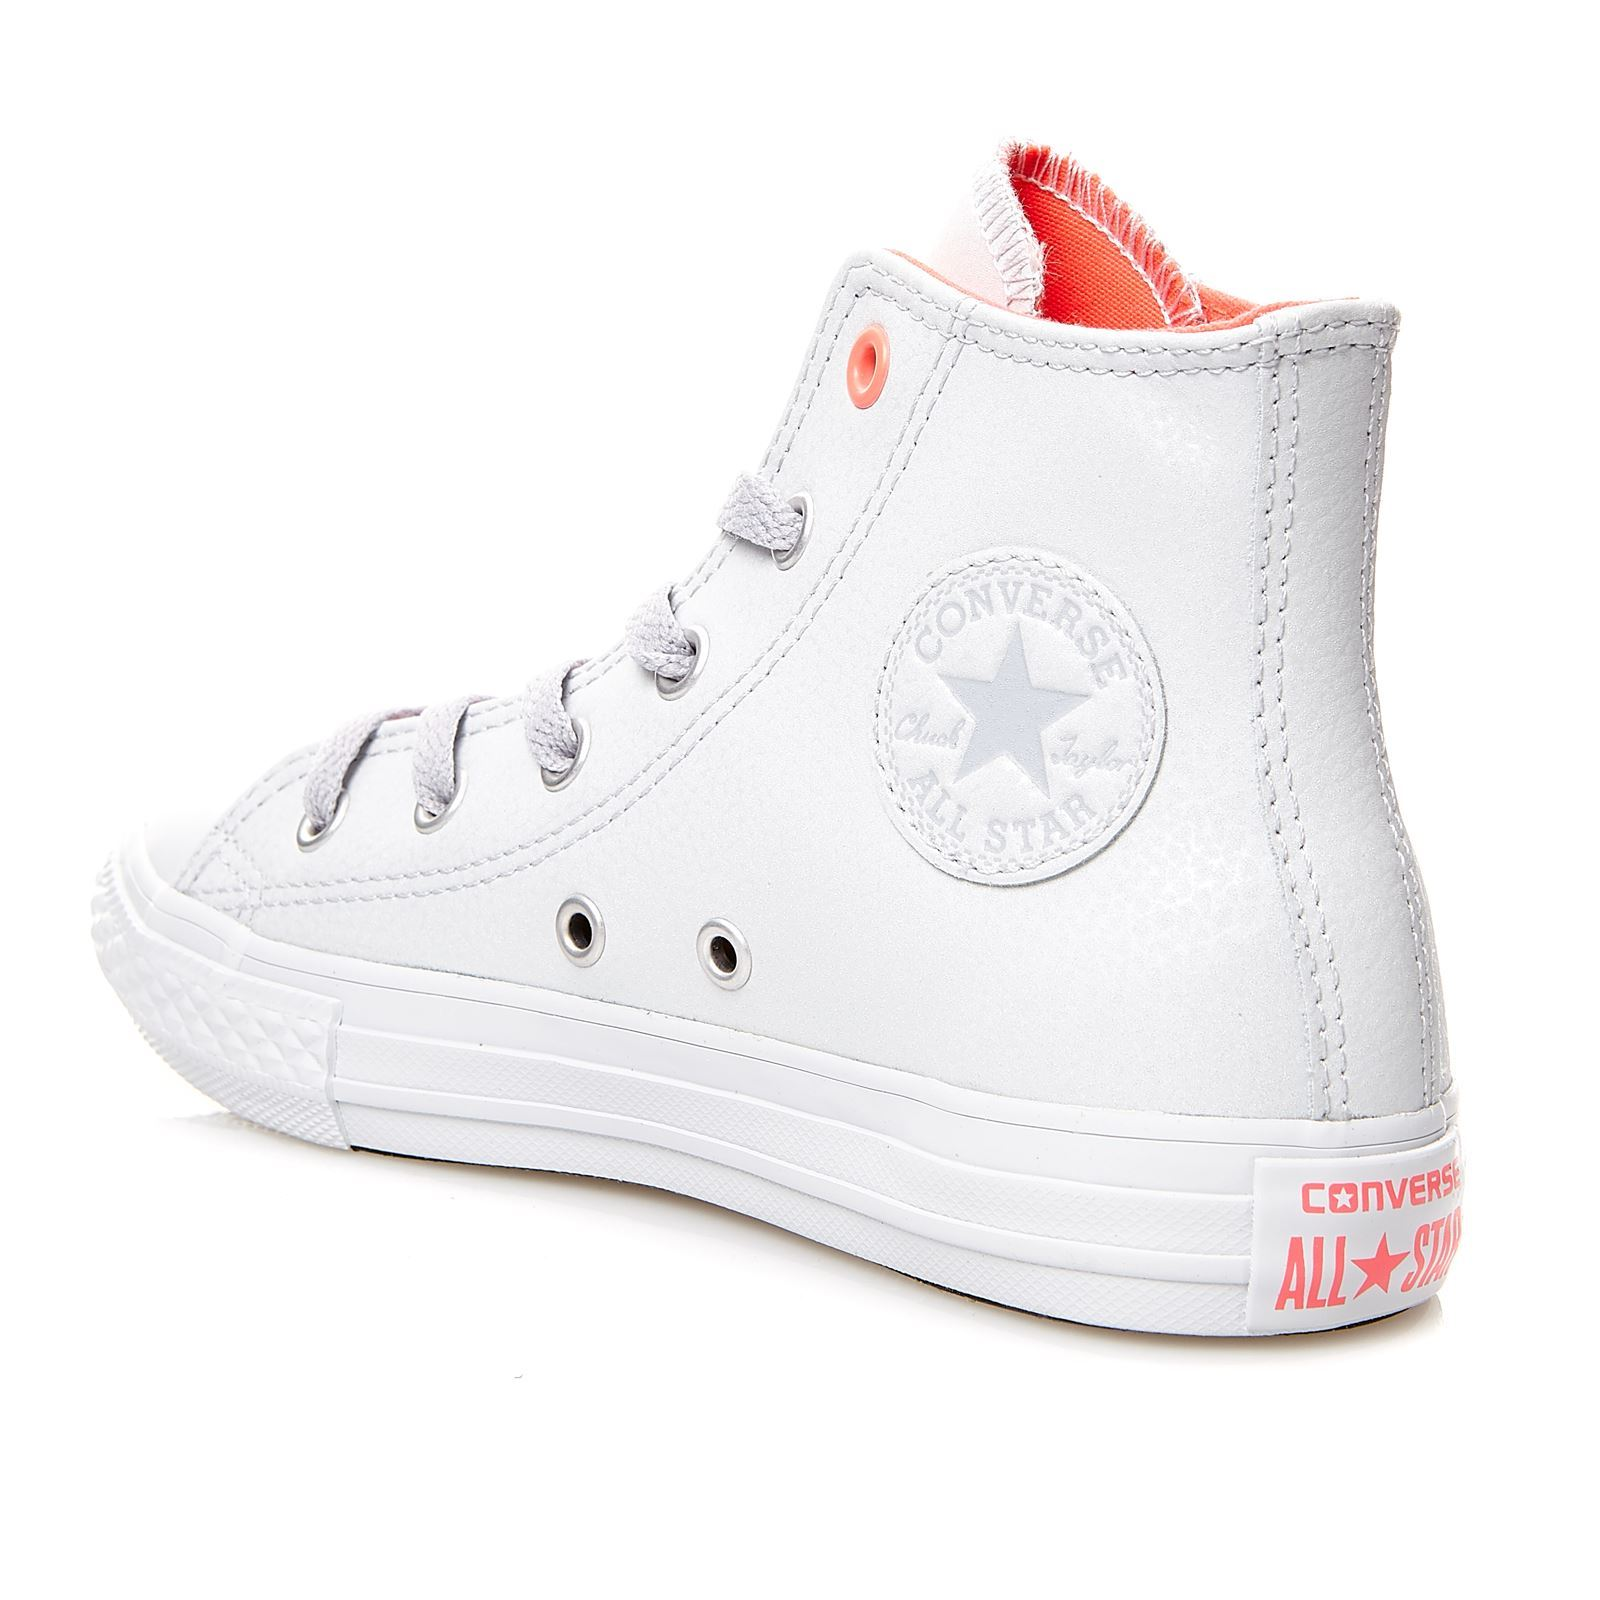 Converse Chuck Taylor All Star Hi Zapatillas - Gris